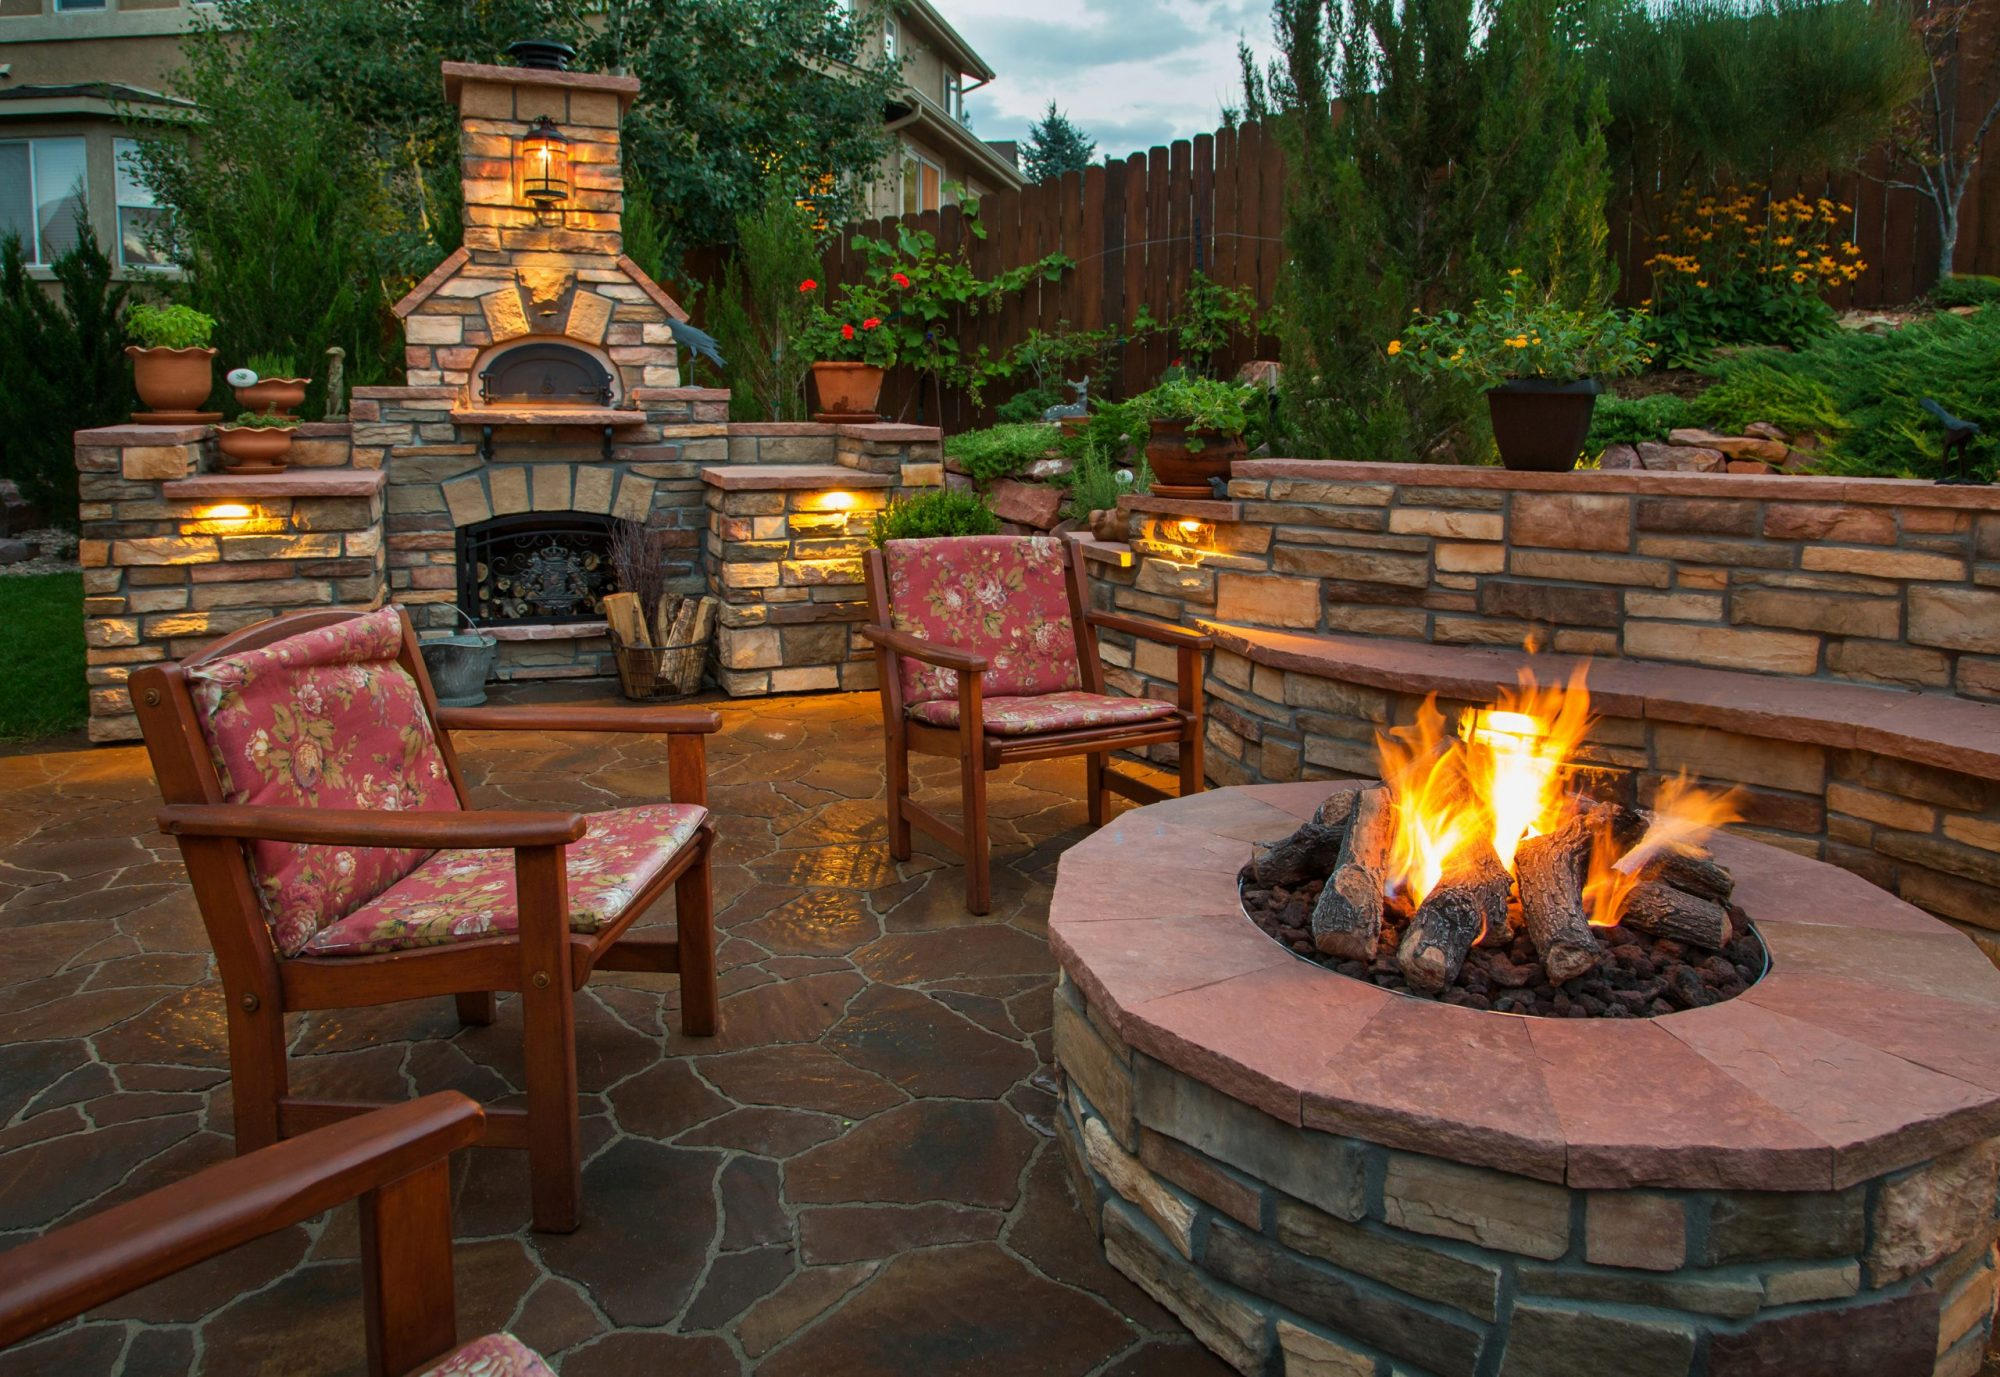 amazing backyard with pizza oven and fire pit